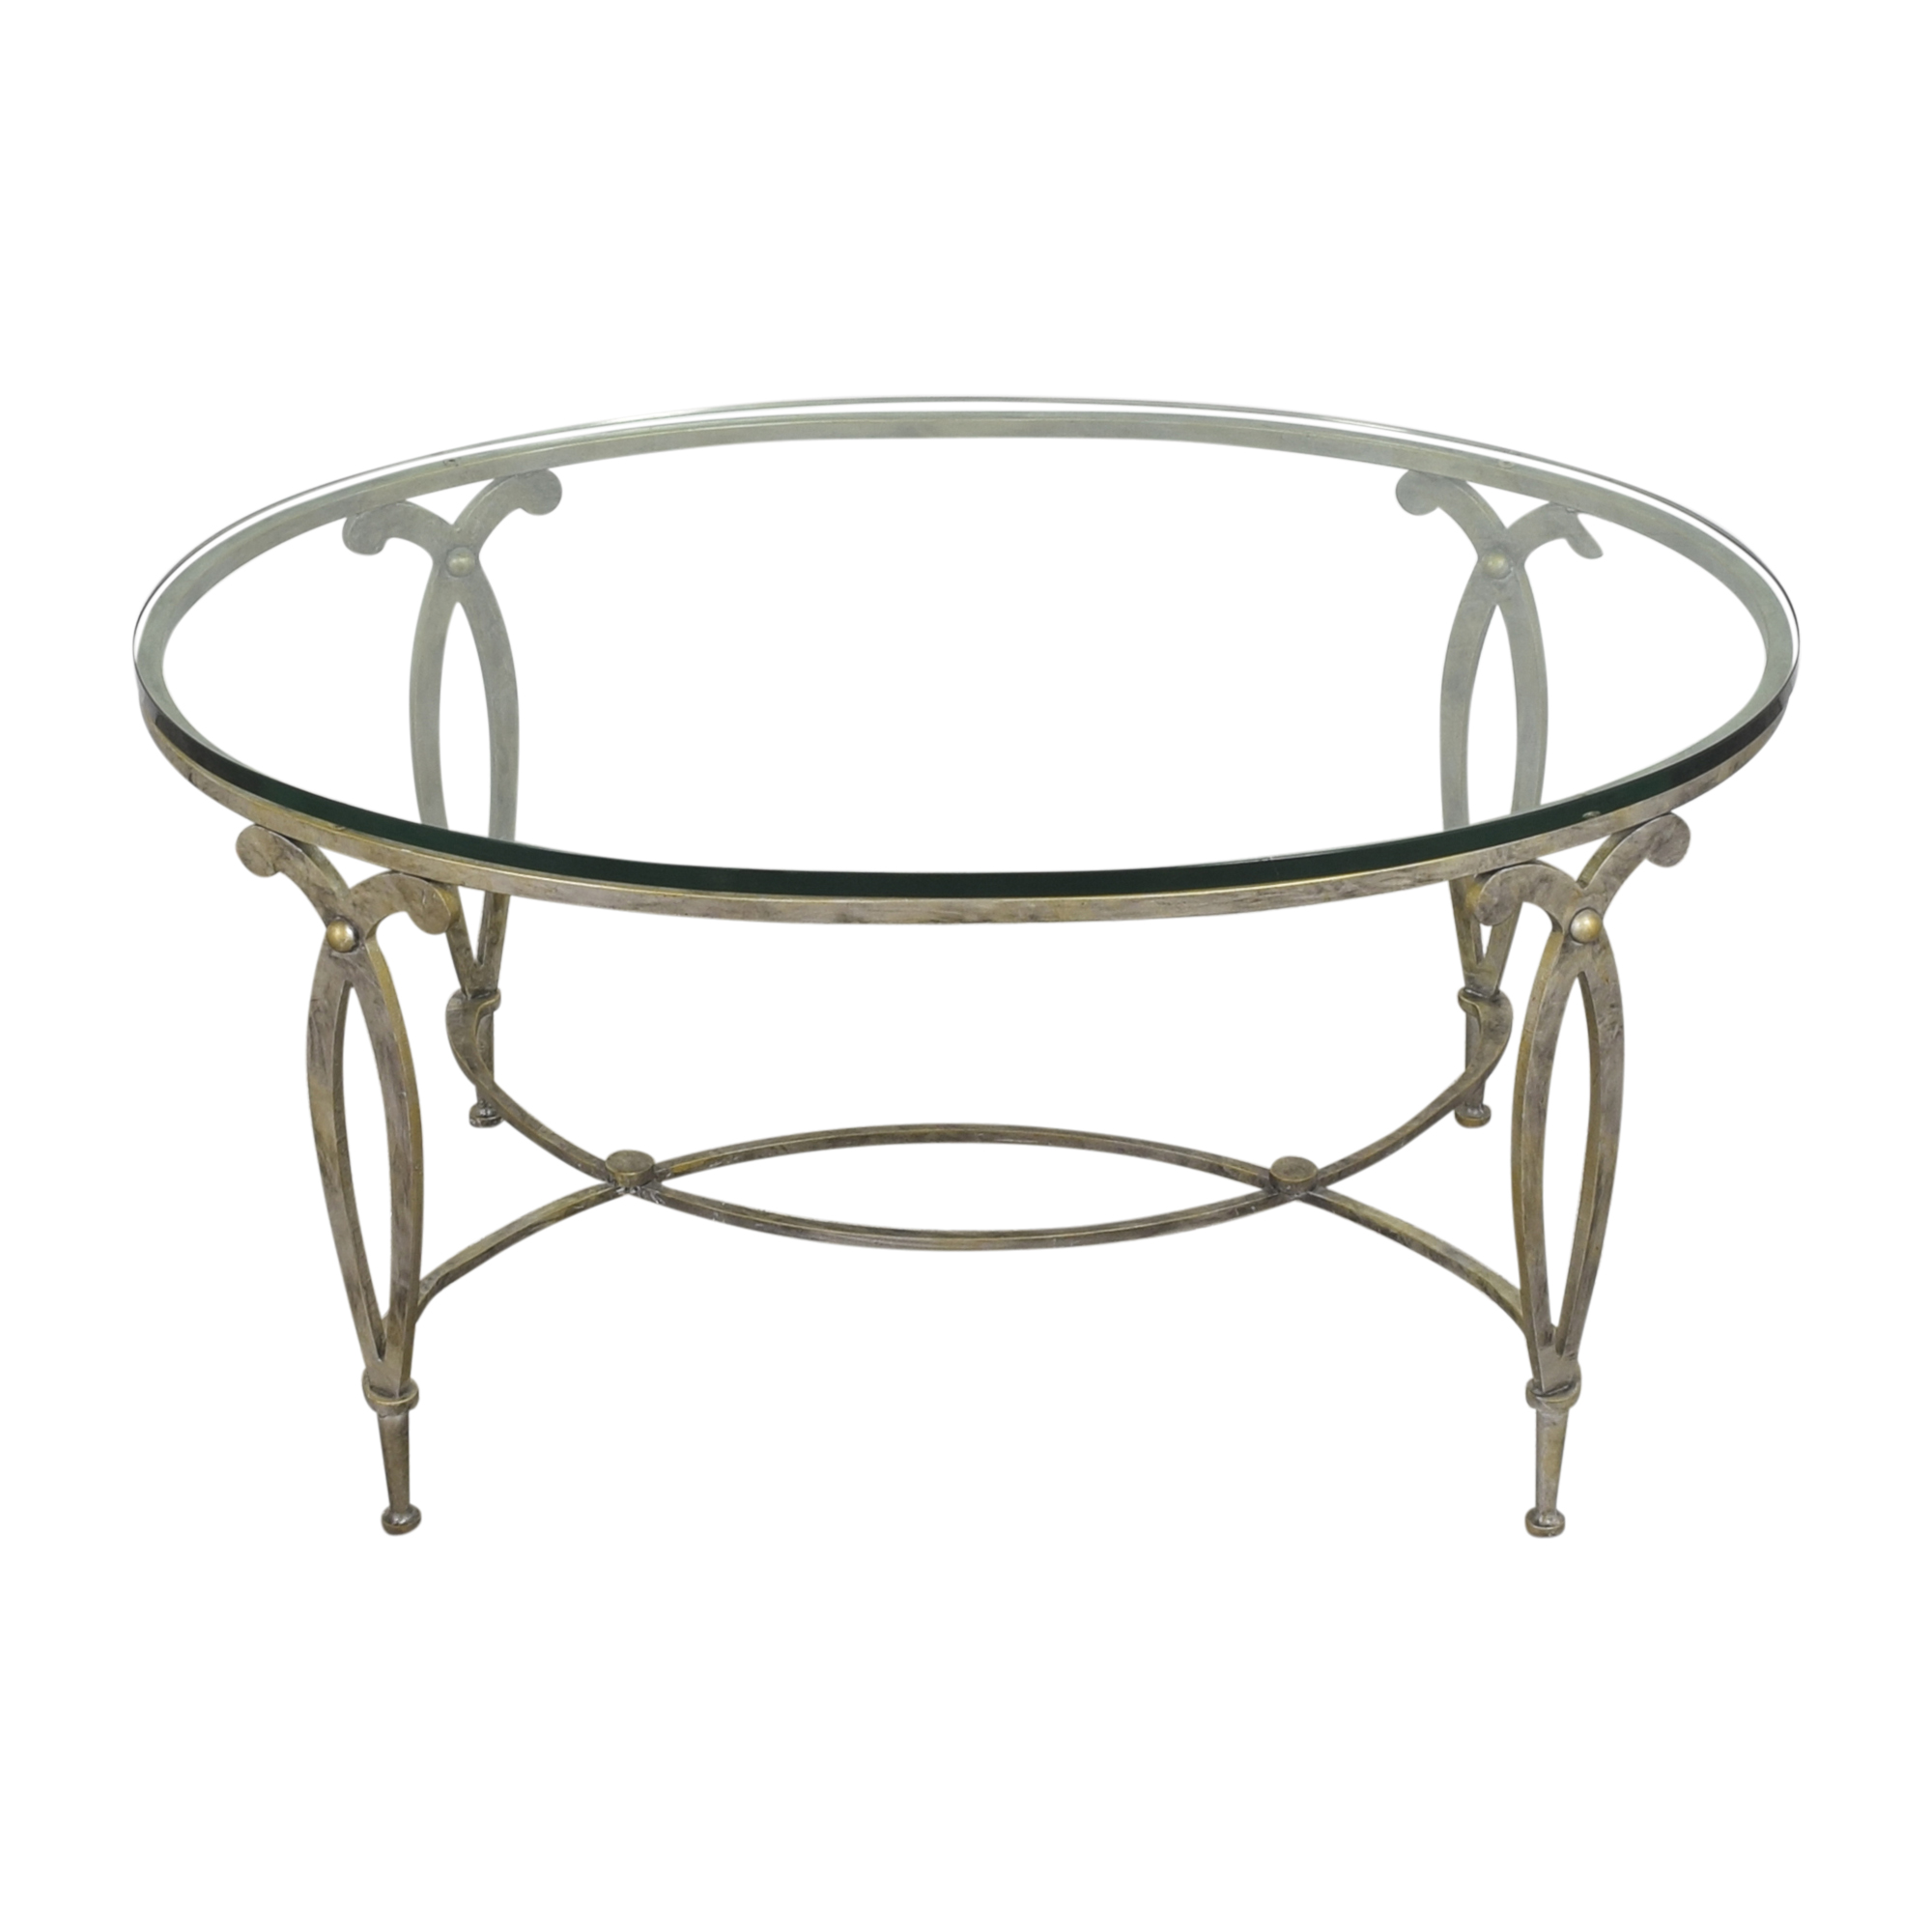 Oval Coffee Table dimensions